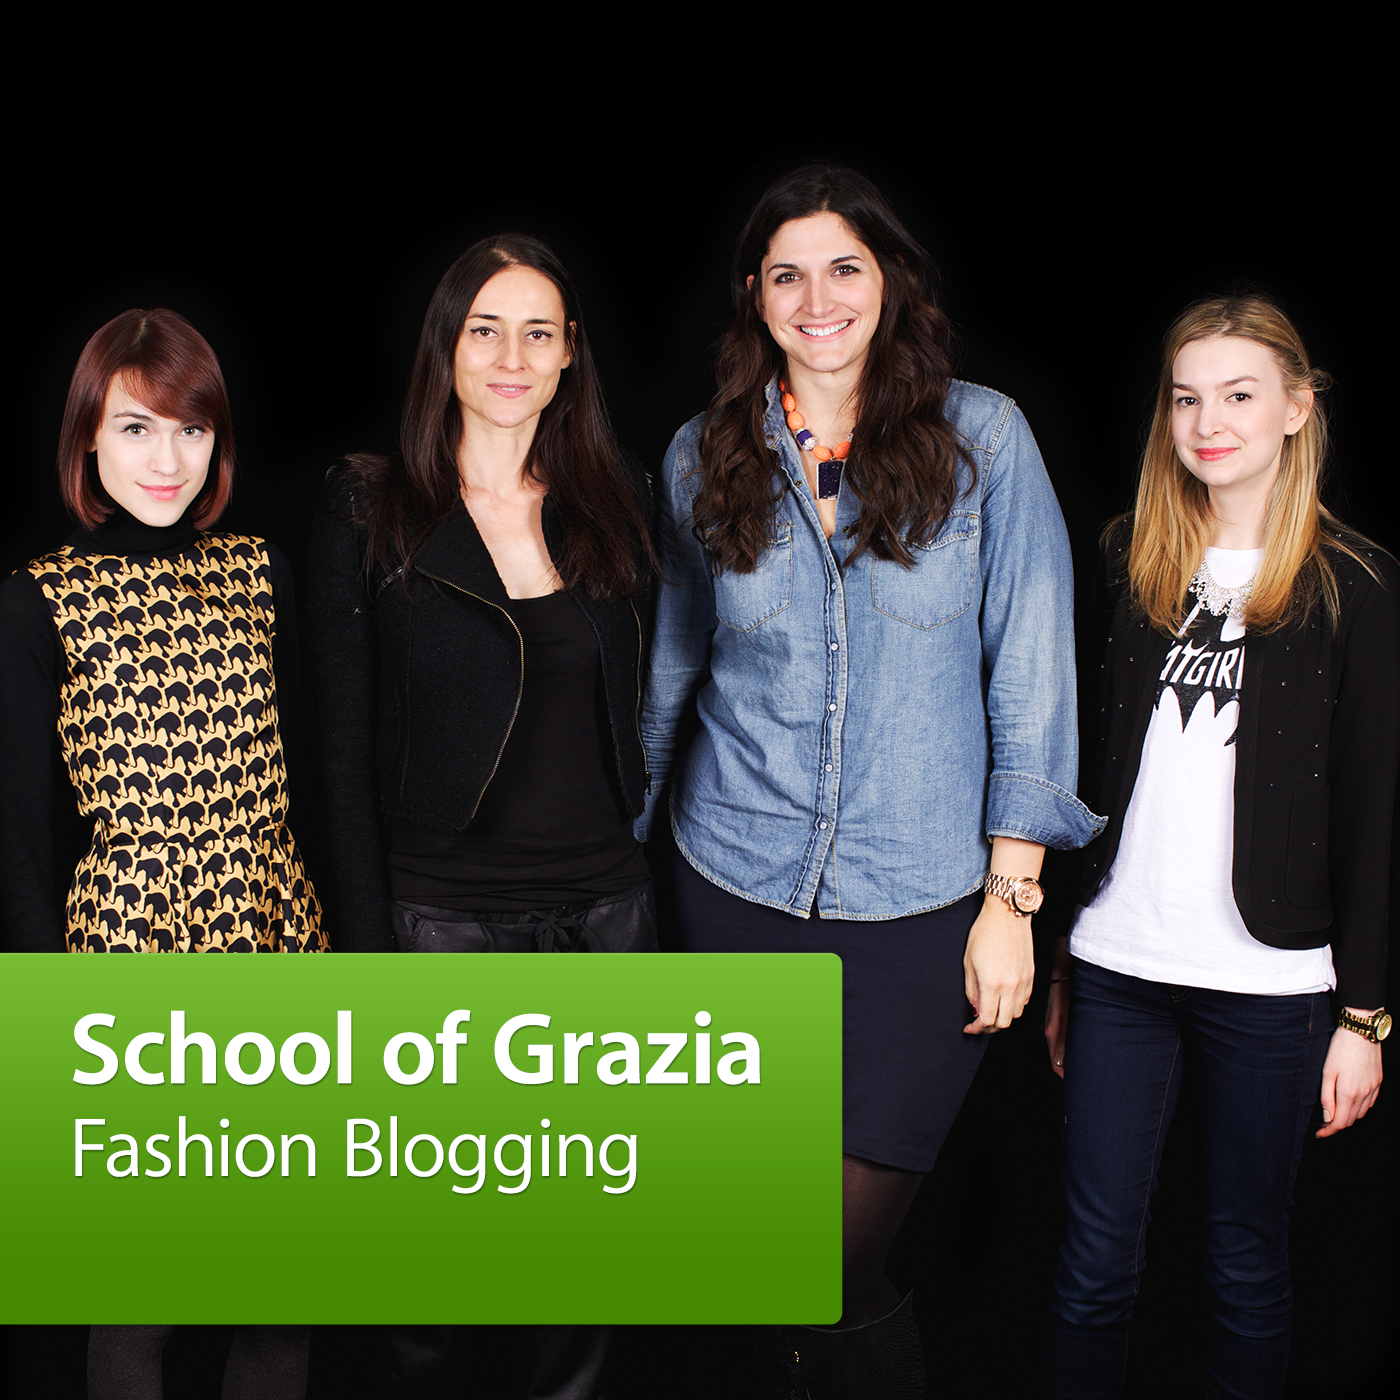 School of Grazia: Fashion Blogging